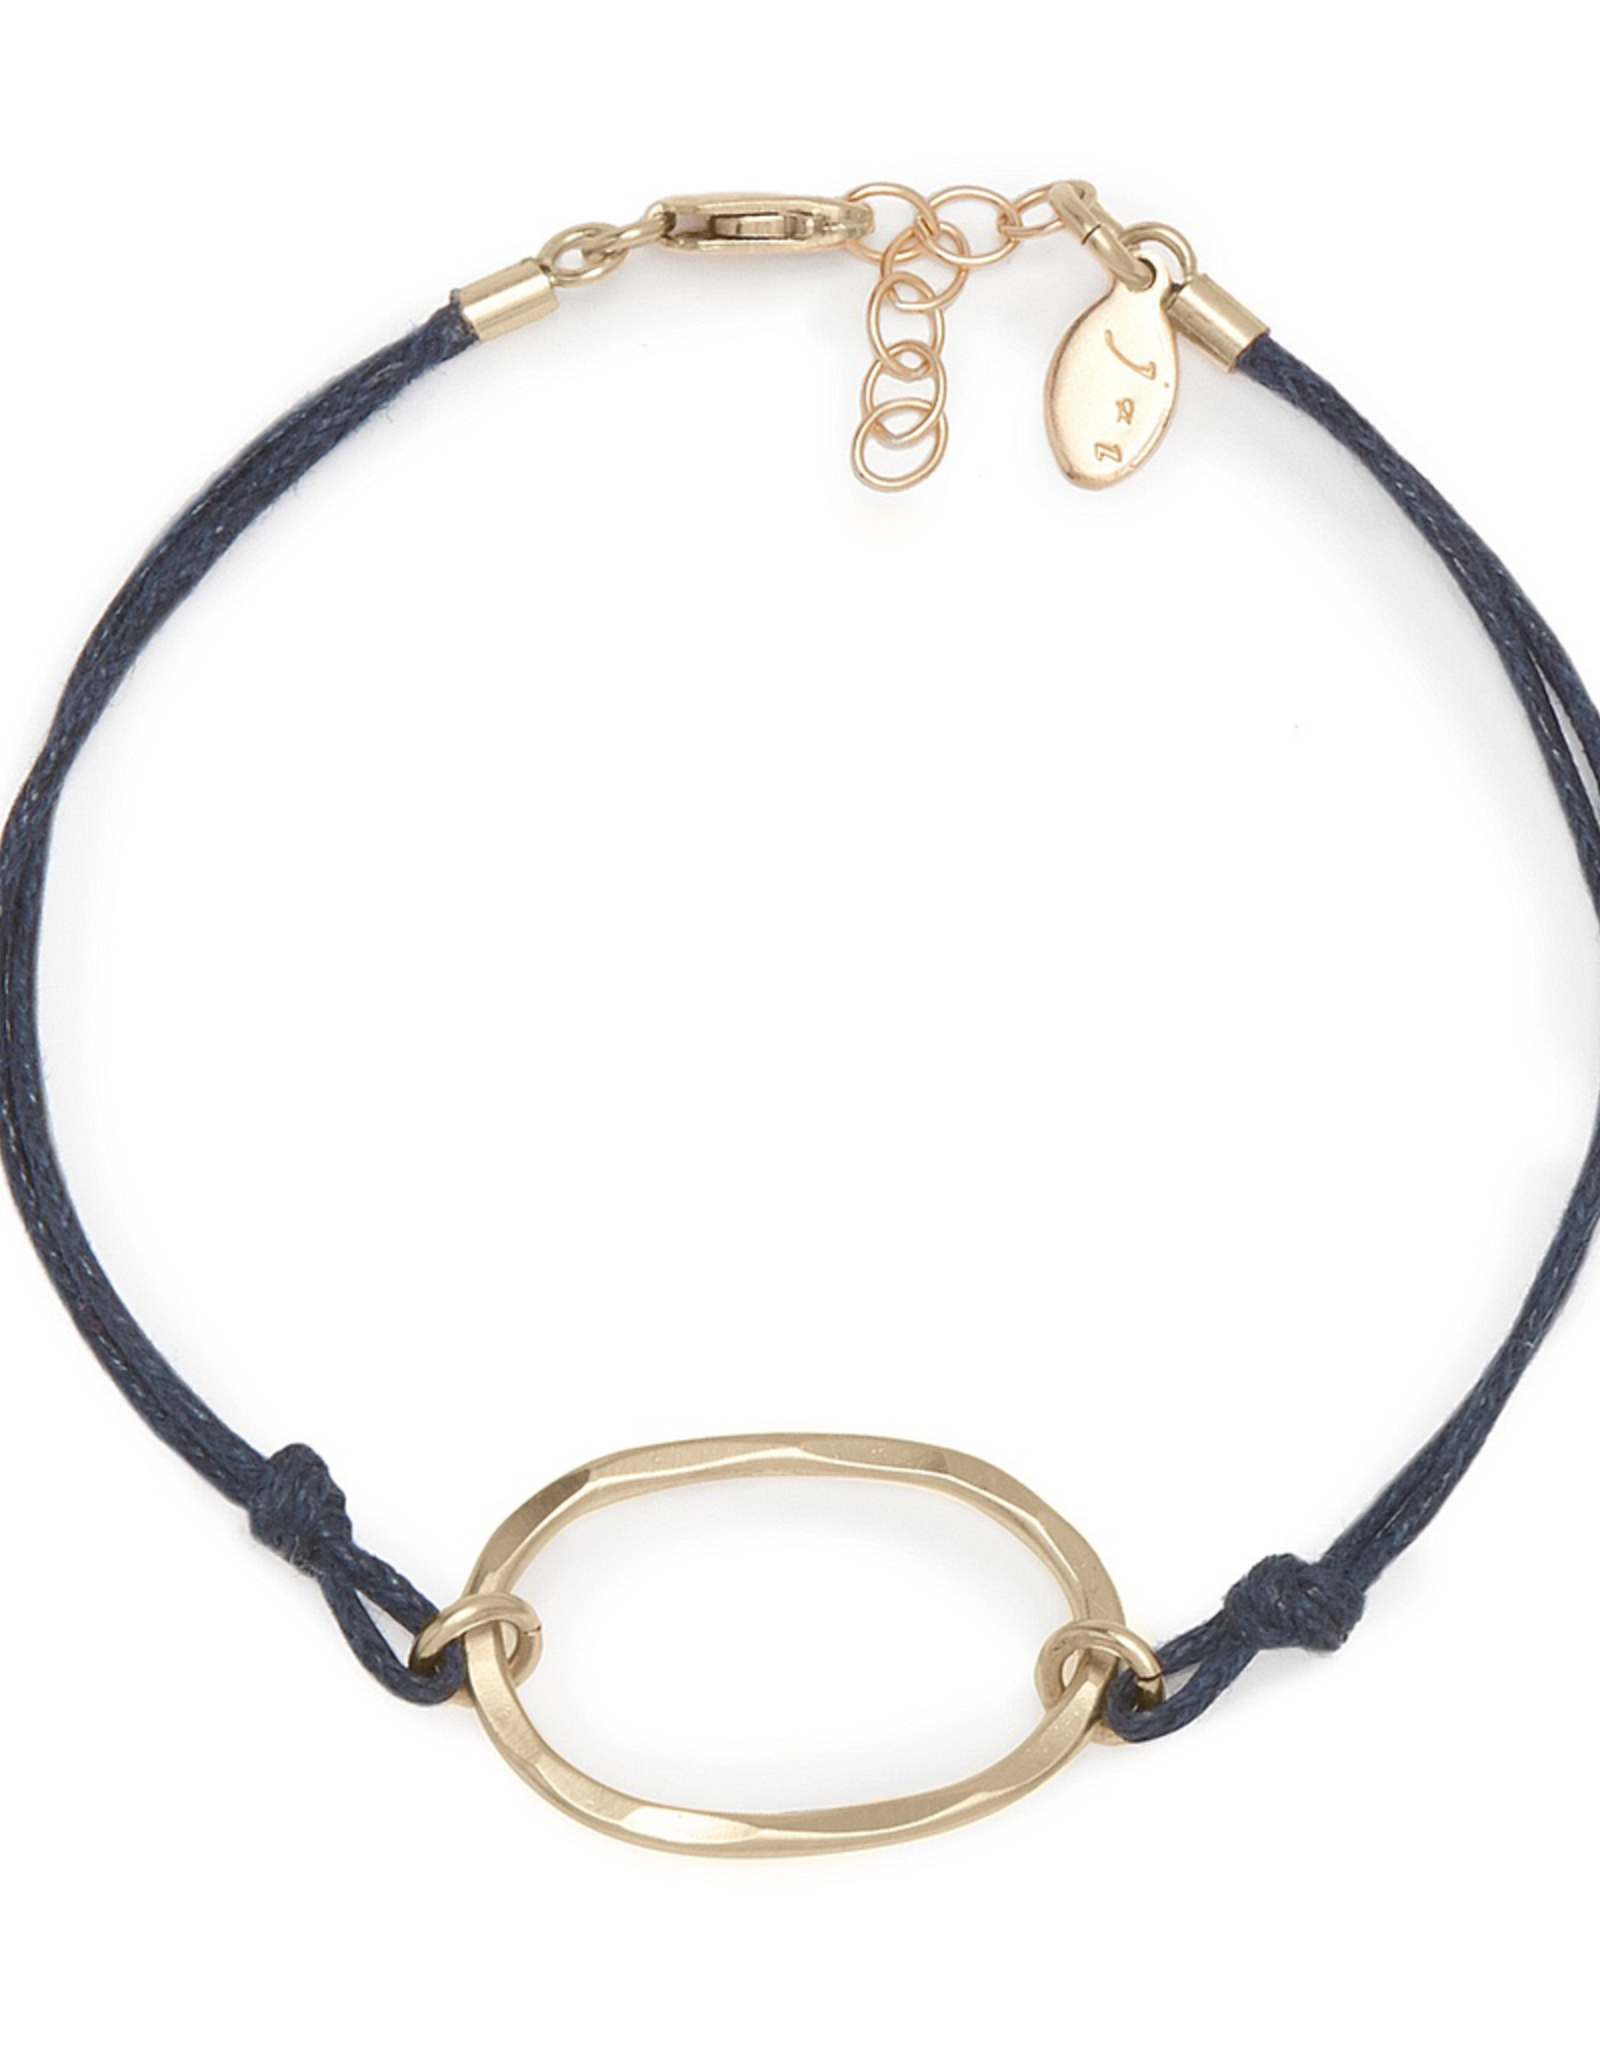 Handmade 14k Goldfill Oval on Royal Blue Cord Bracelet